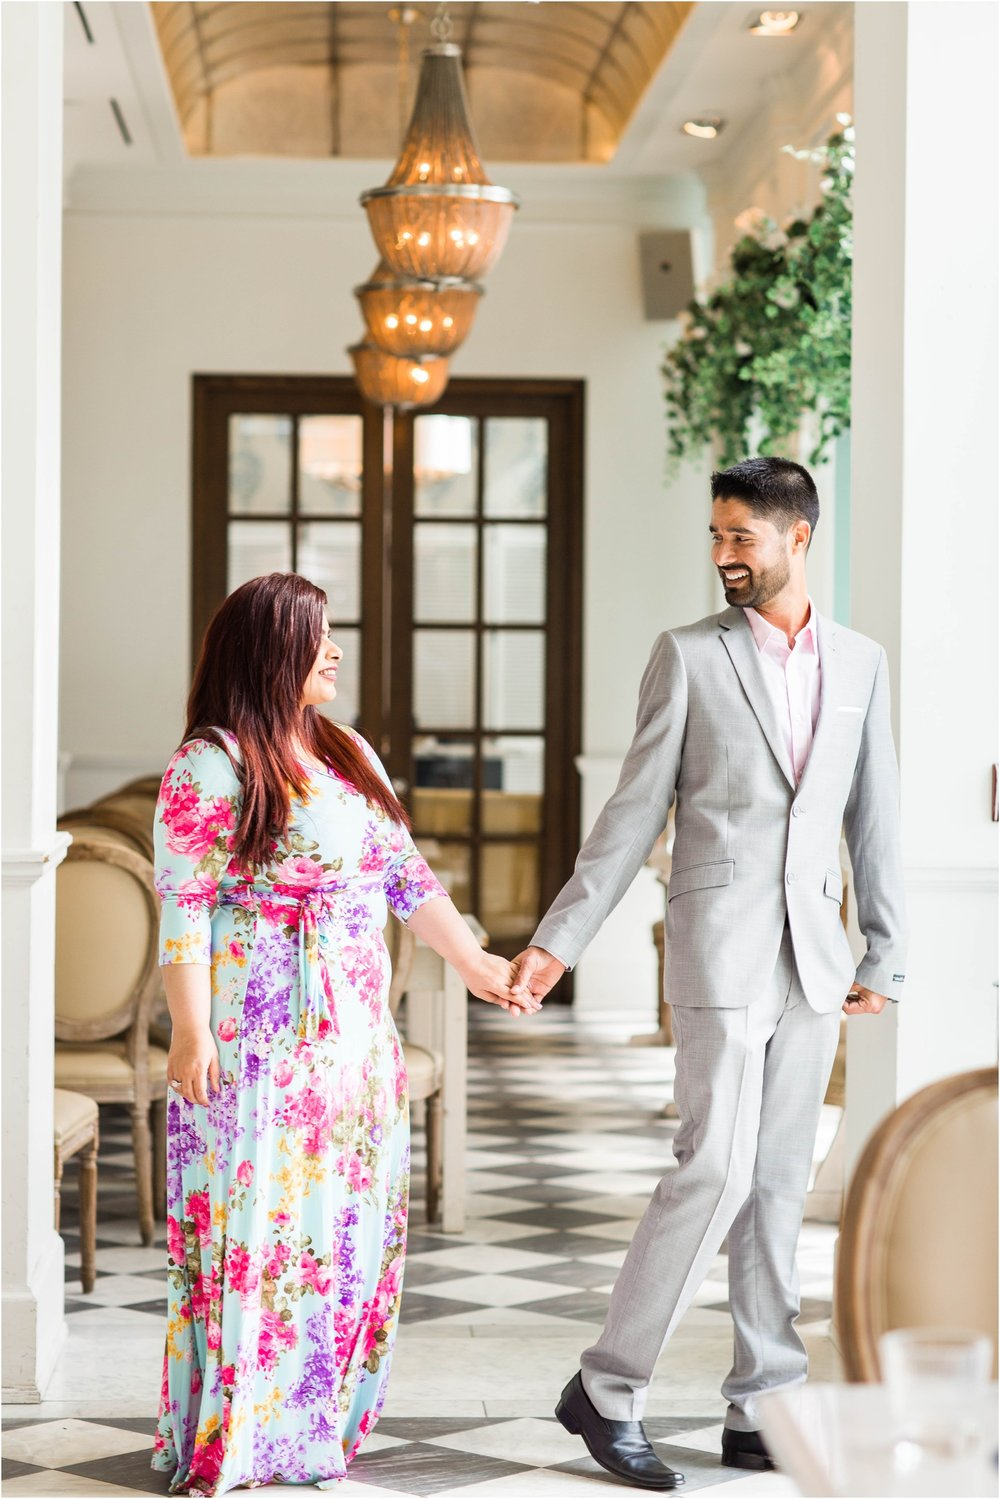 Colette-Grand-Cafe-Thompson-Hotel-Osgoode-Hall-Engagement-Session-Toronto-Mississauga-Brampton-Scarborough-GTA-Pakistani-Indian-Wedding-Engagement-Photographer-Photography_0012.jpg